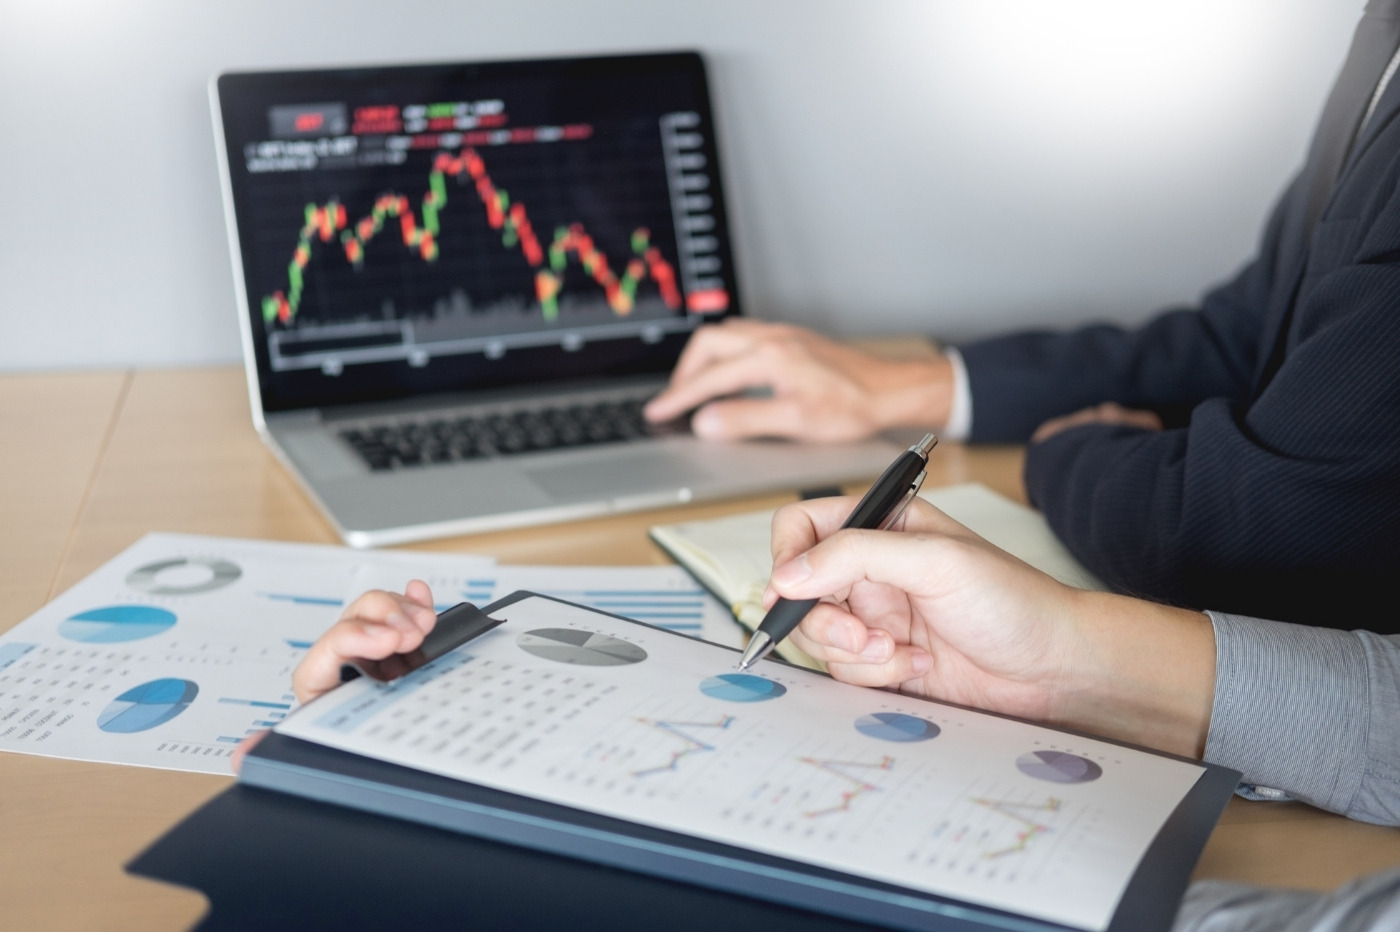 Why the Working Capital Calculation is Crucial When Buying or Selling a Business